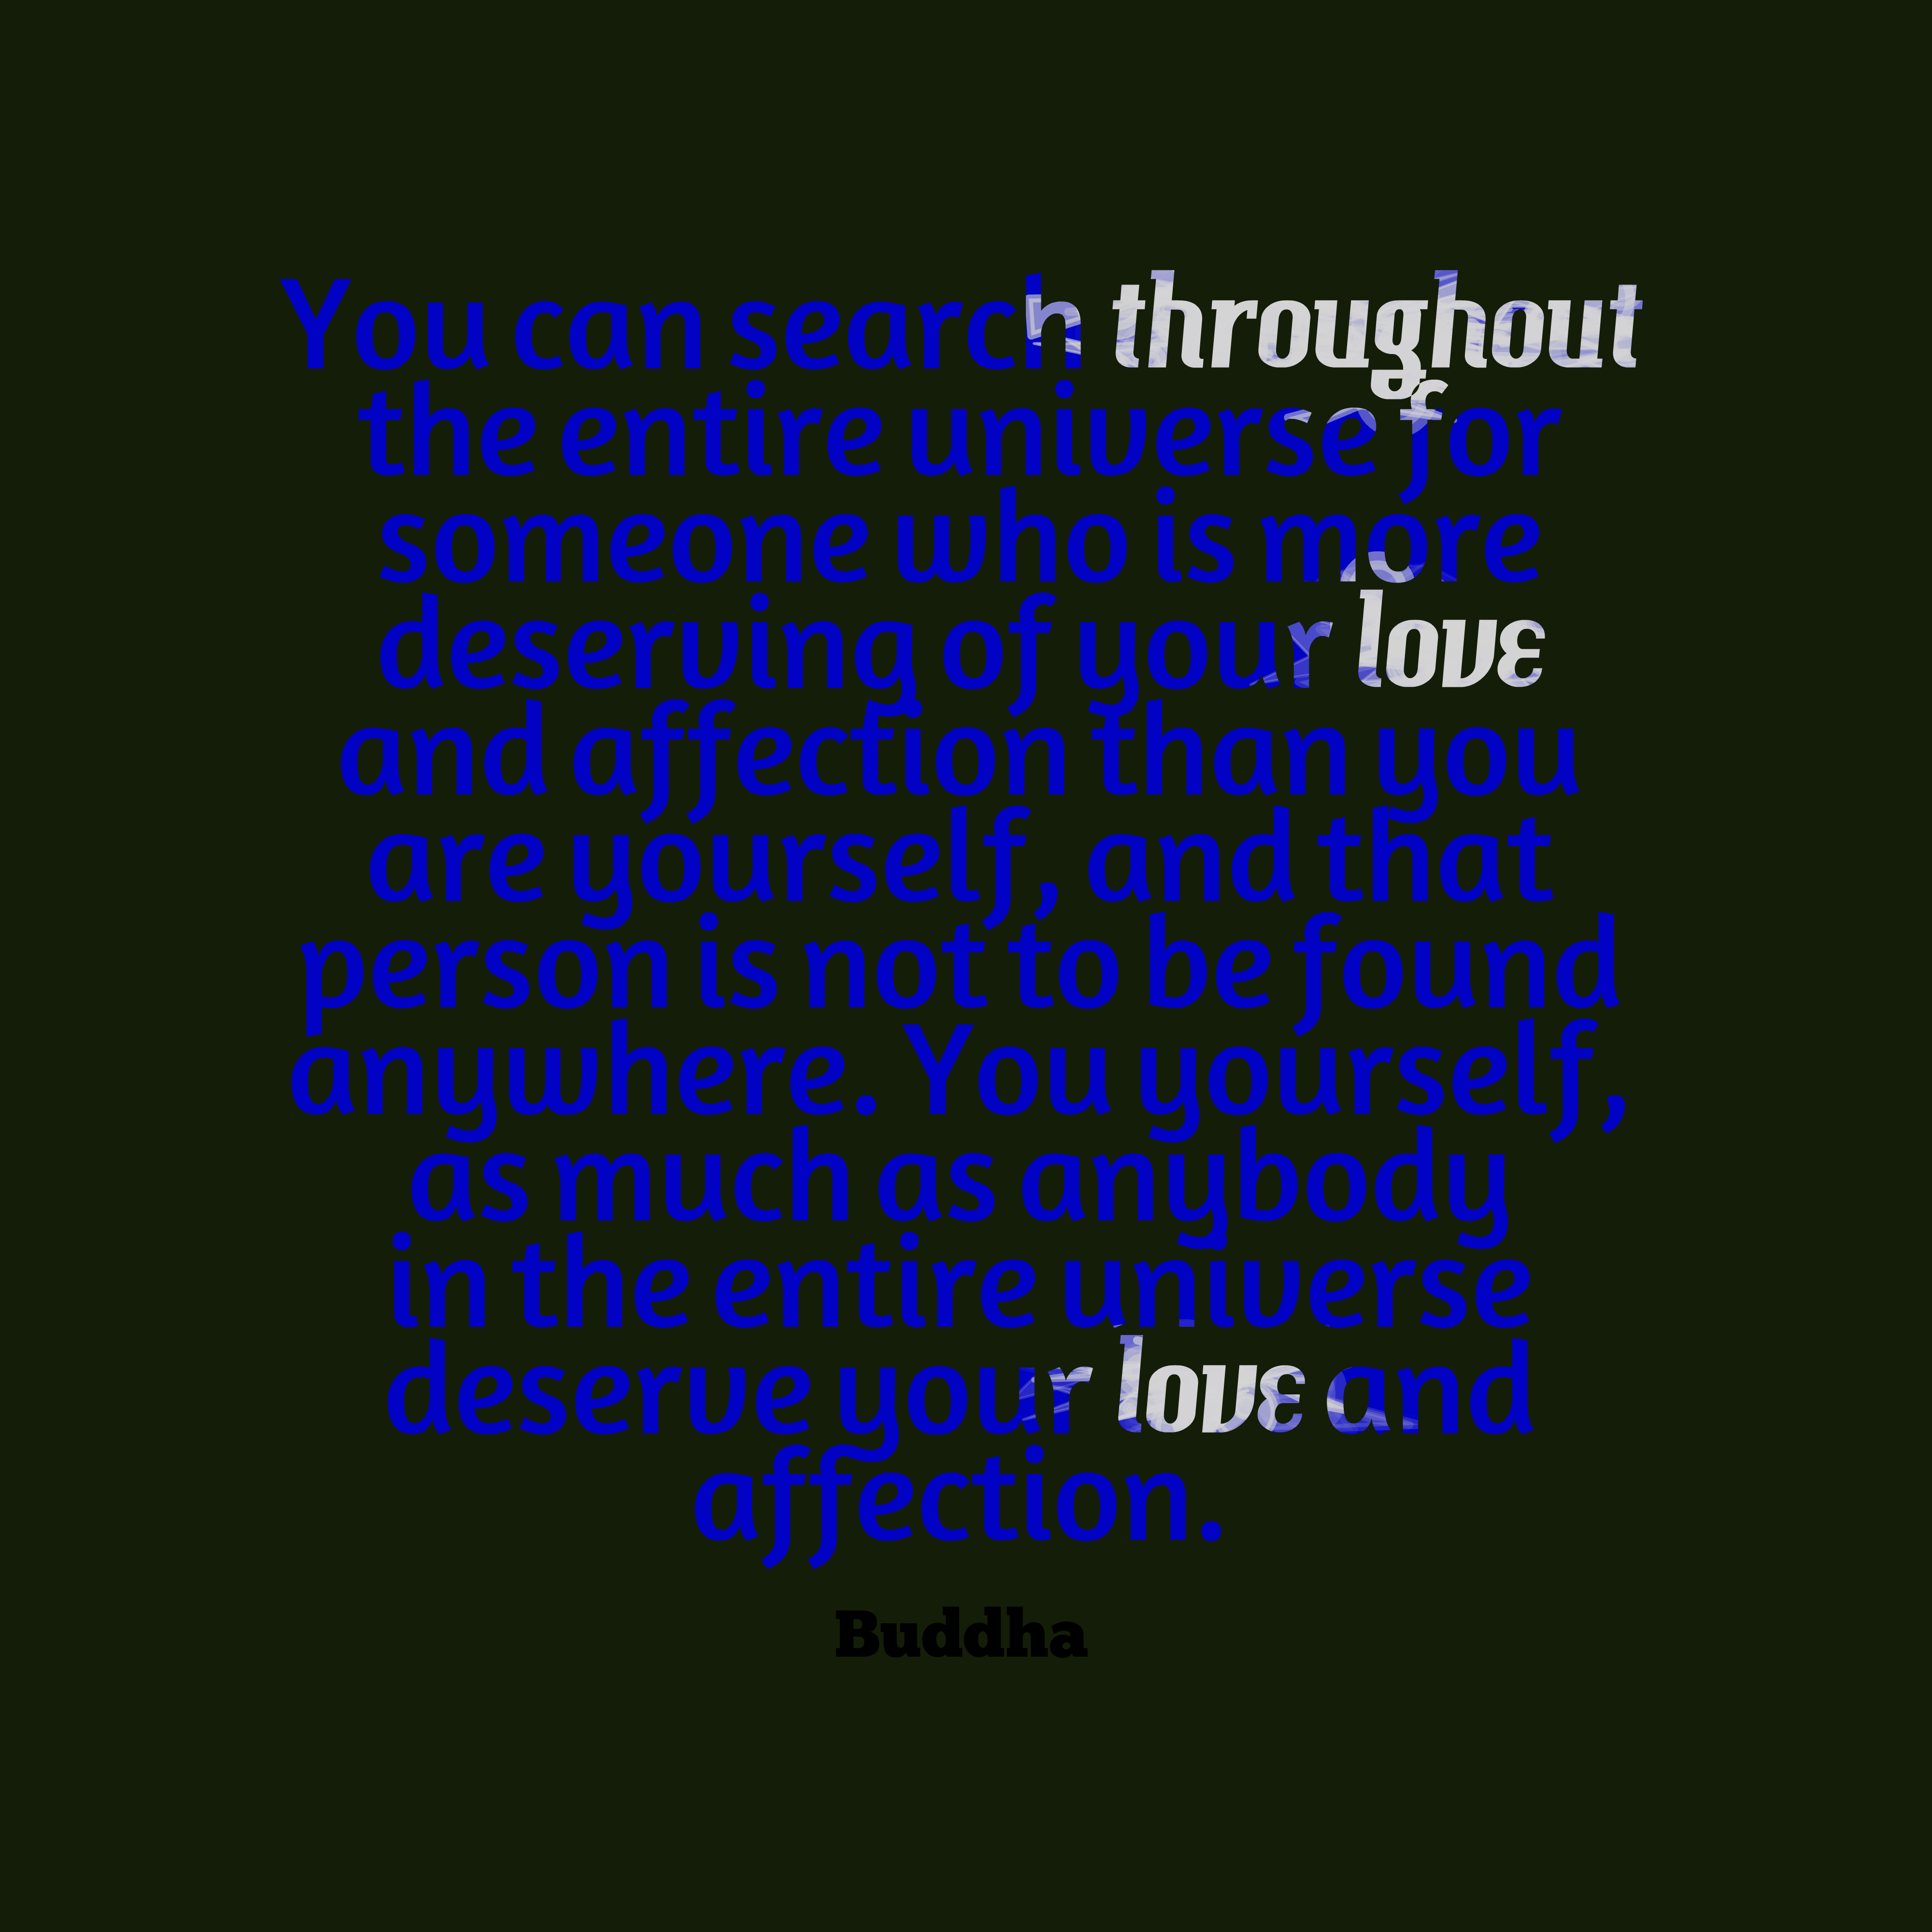 Buddha Quote About Love.